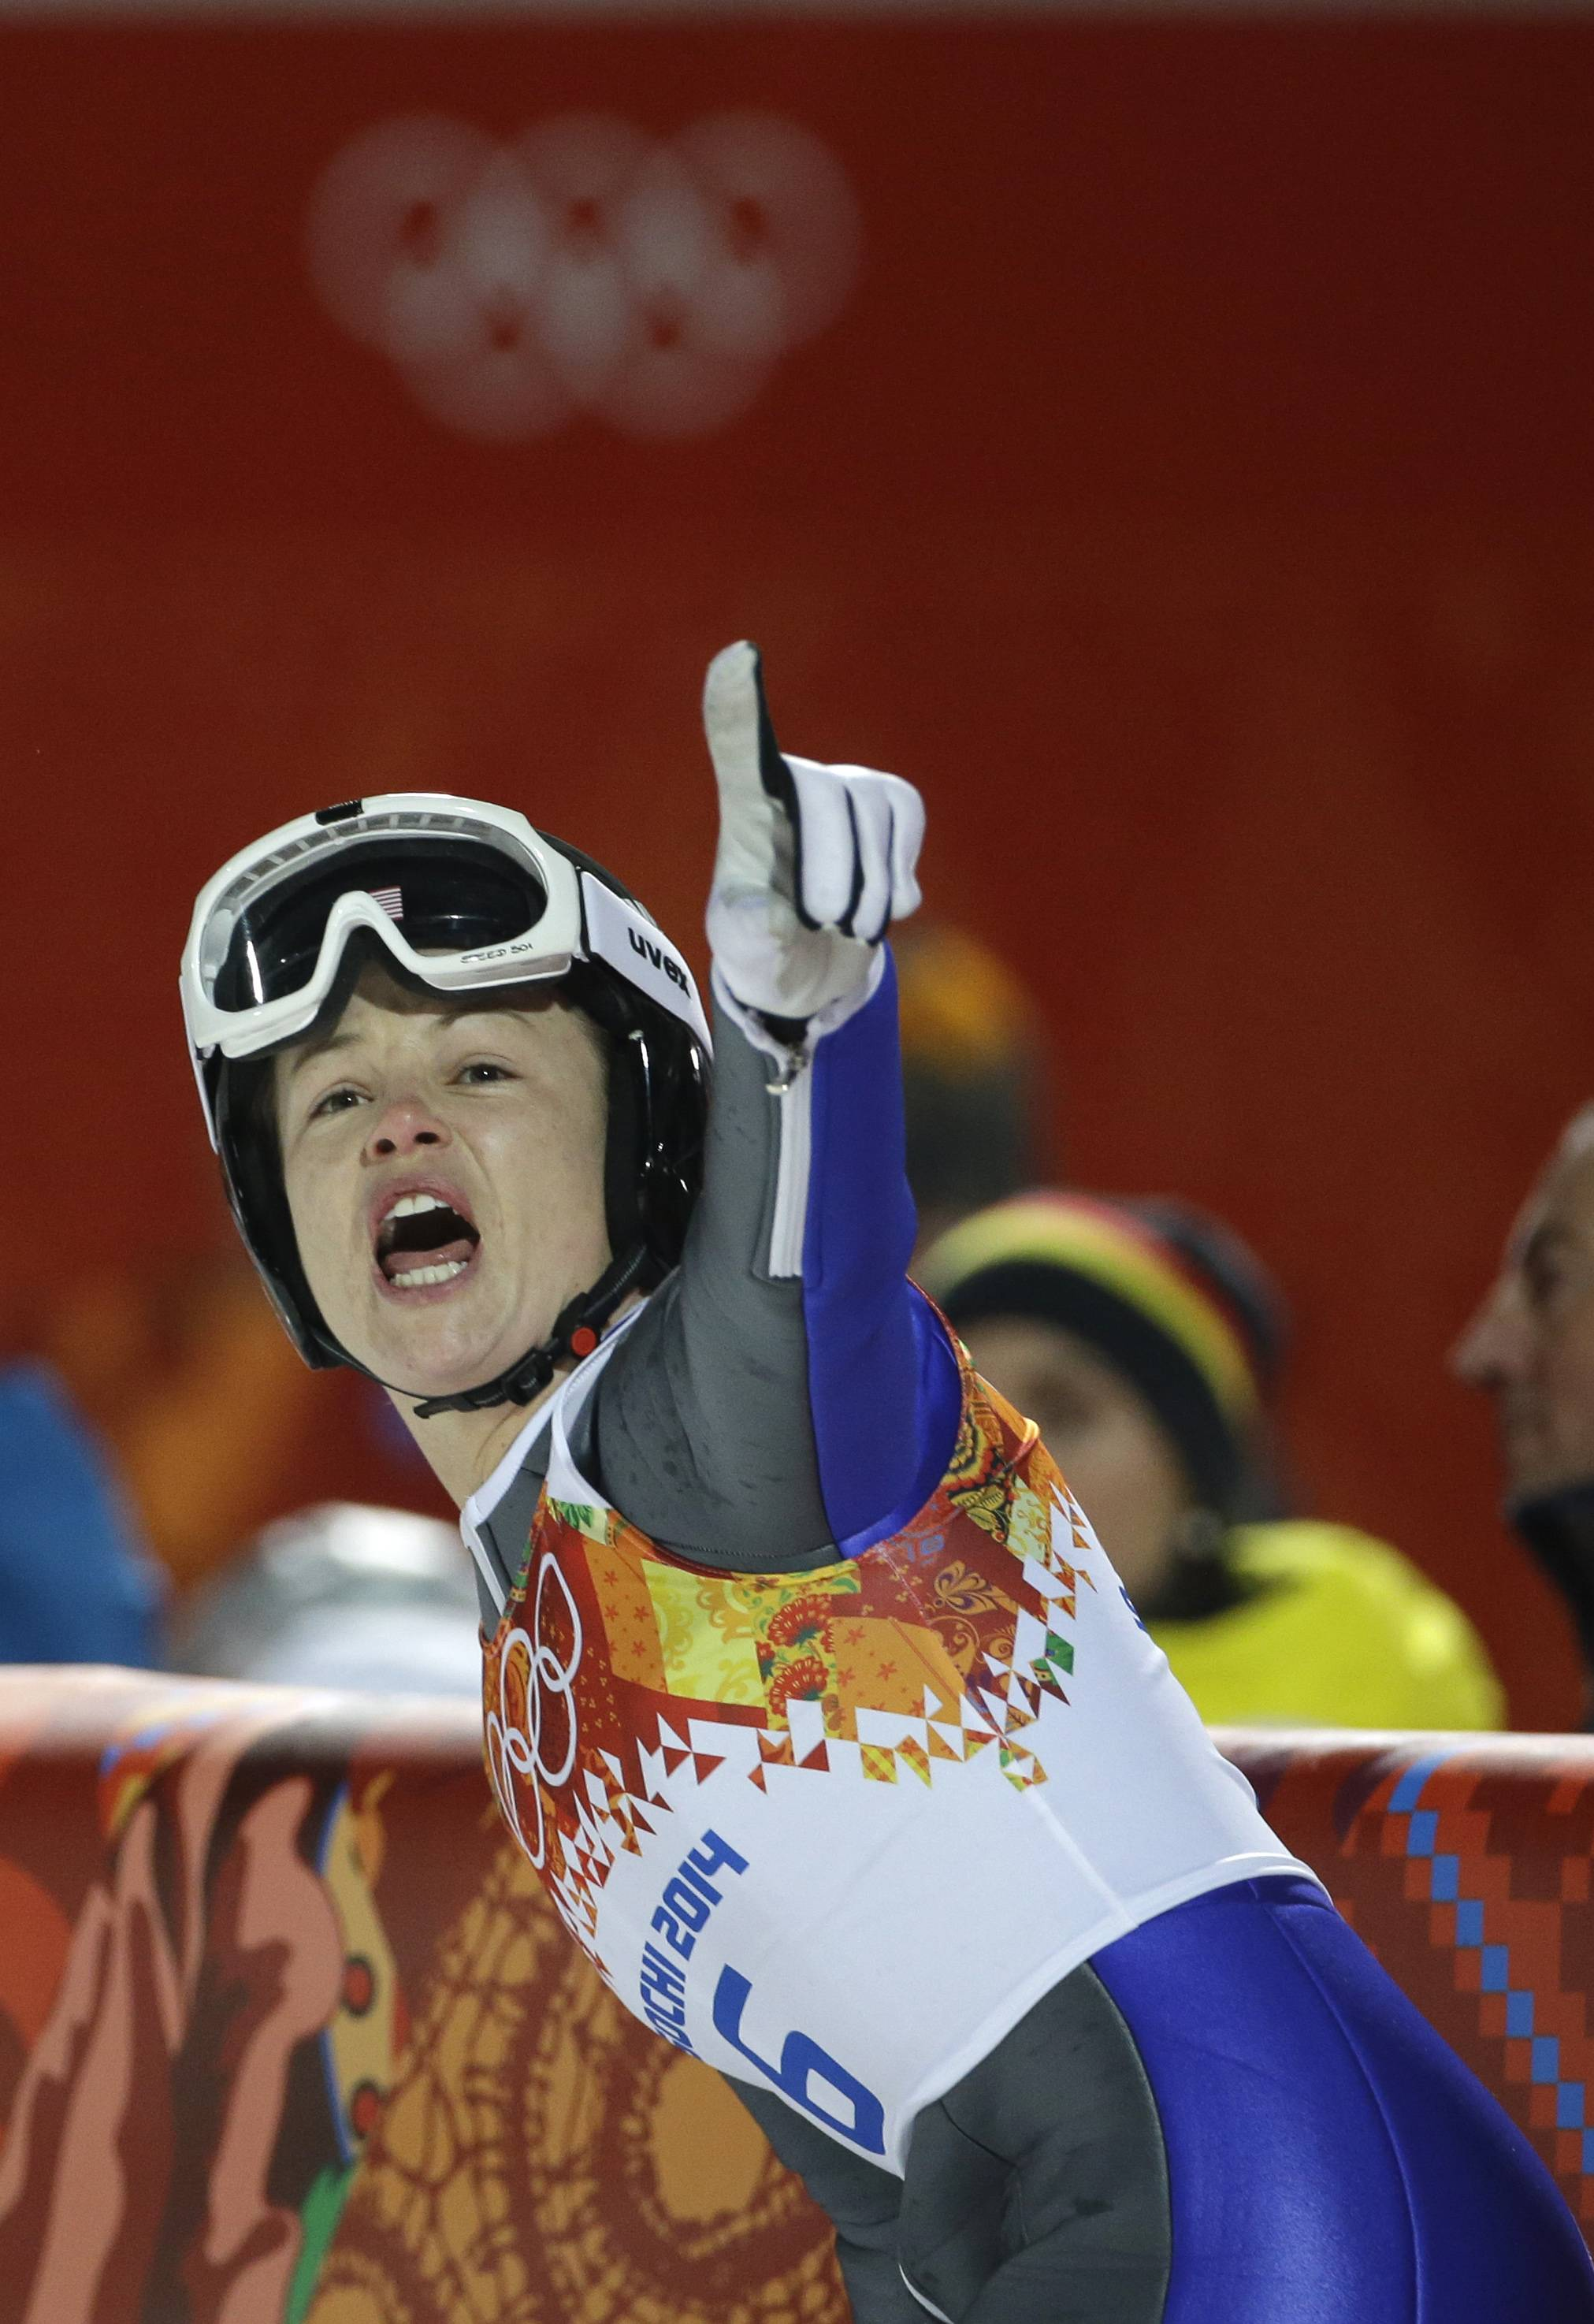 United States' Lindsey Van points to spectators after her first attempt during the women's normal hill ski jumping final at the 2014 Winter Olympics, Tuesday, Feb. 11, 2014, in Krasnaya Polyana, Russia. (AP Photo/Gregorio Borgia)